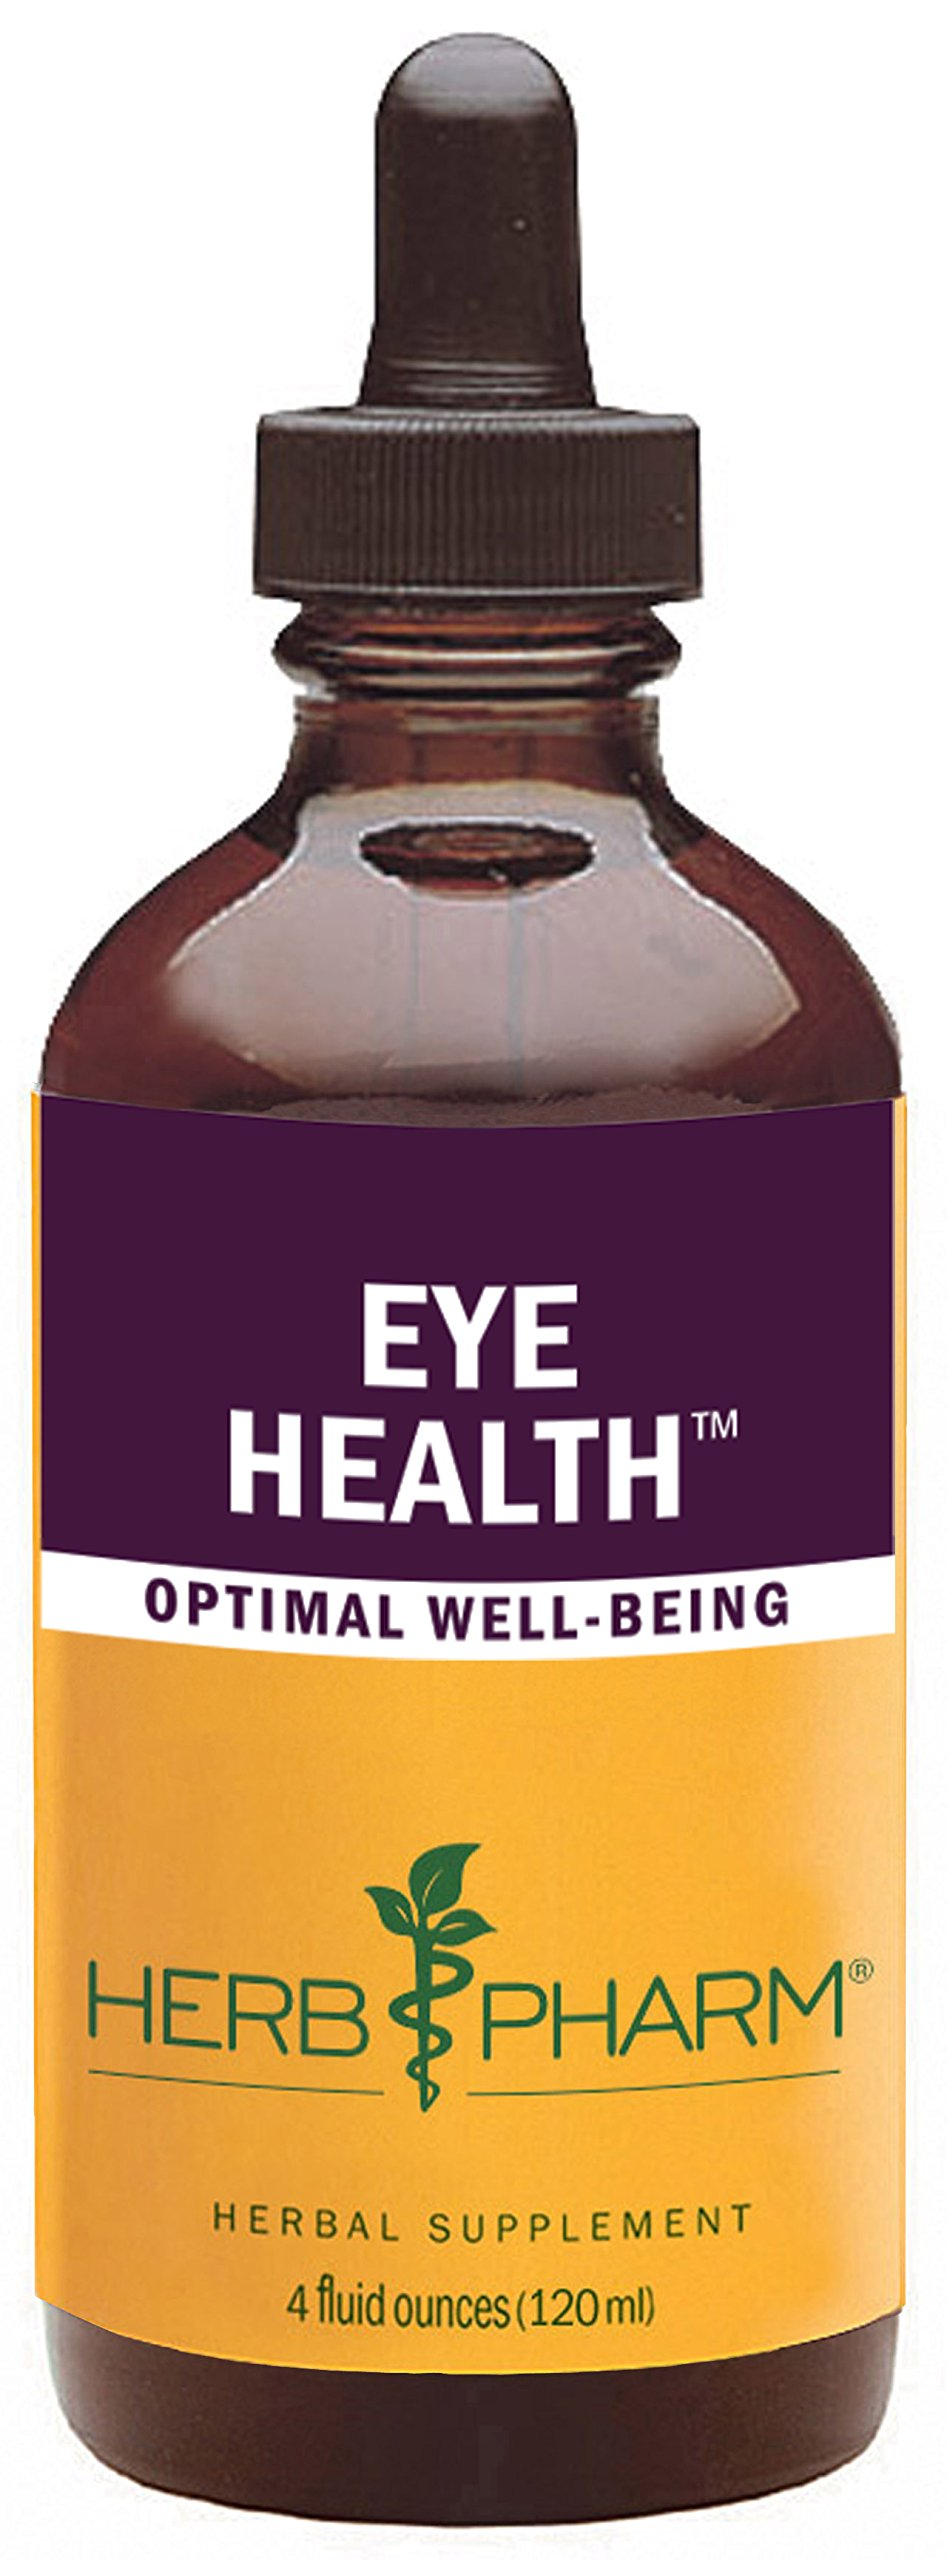 Herb Pharm Eye Health Liquid Herbal Formula with Bilberry and Goji Liquid Extracts - 4 Ounce